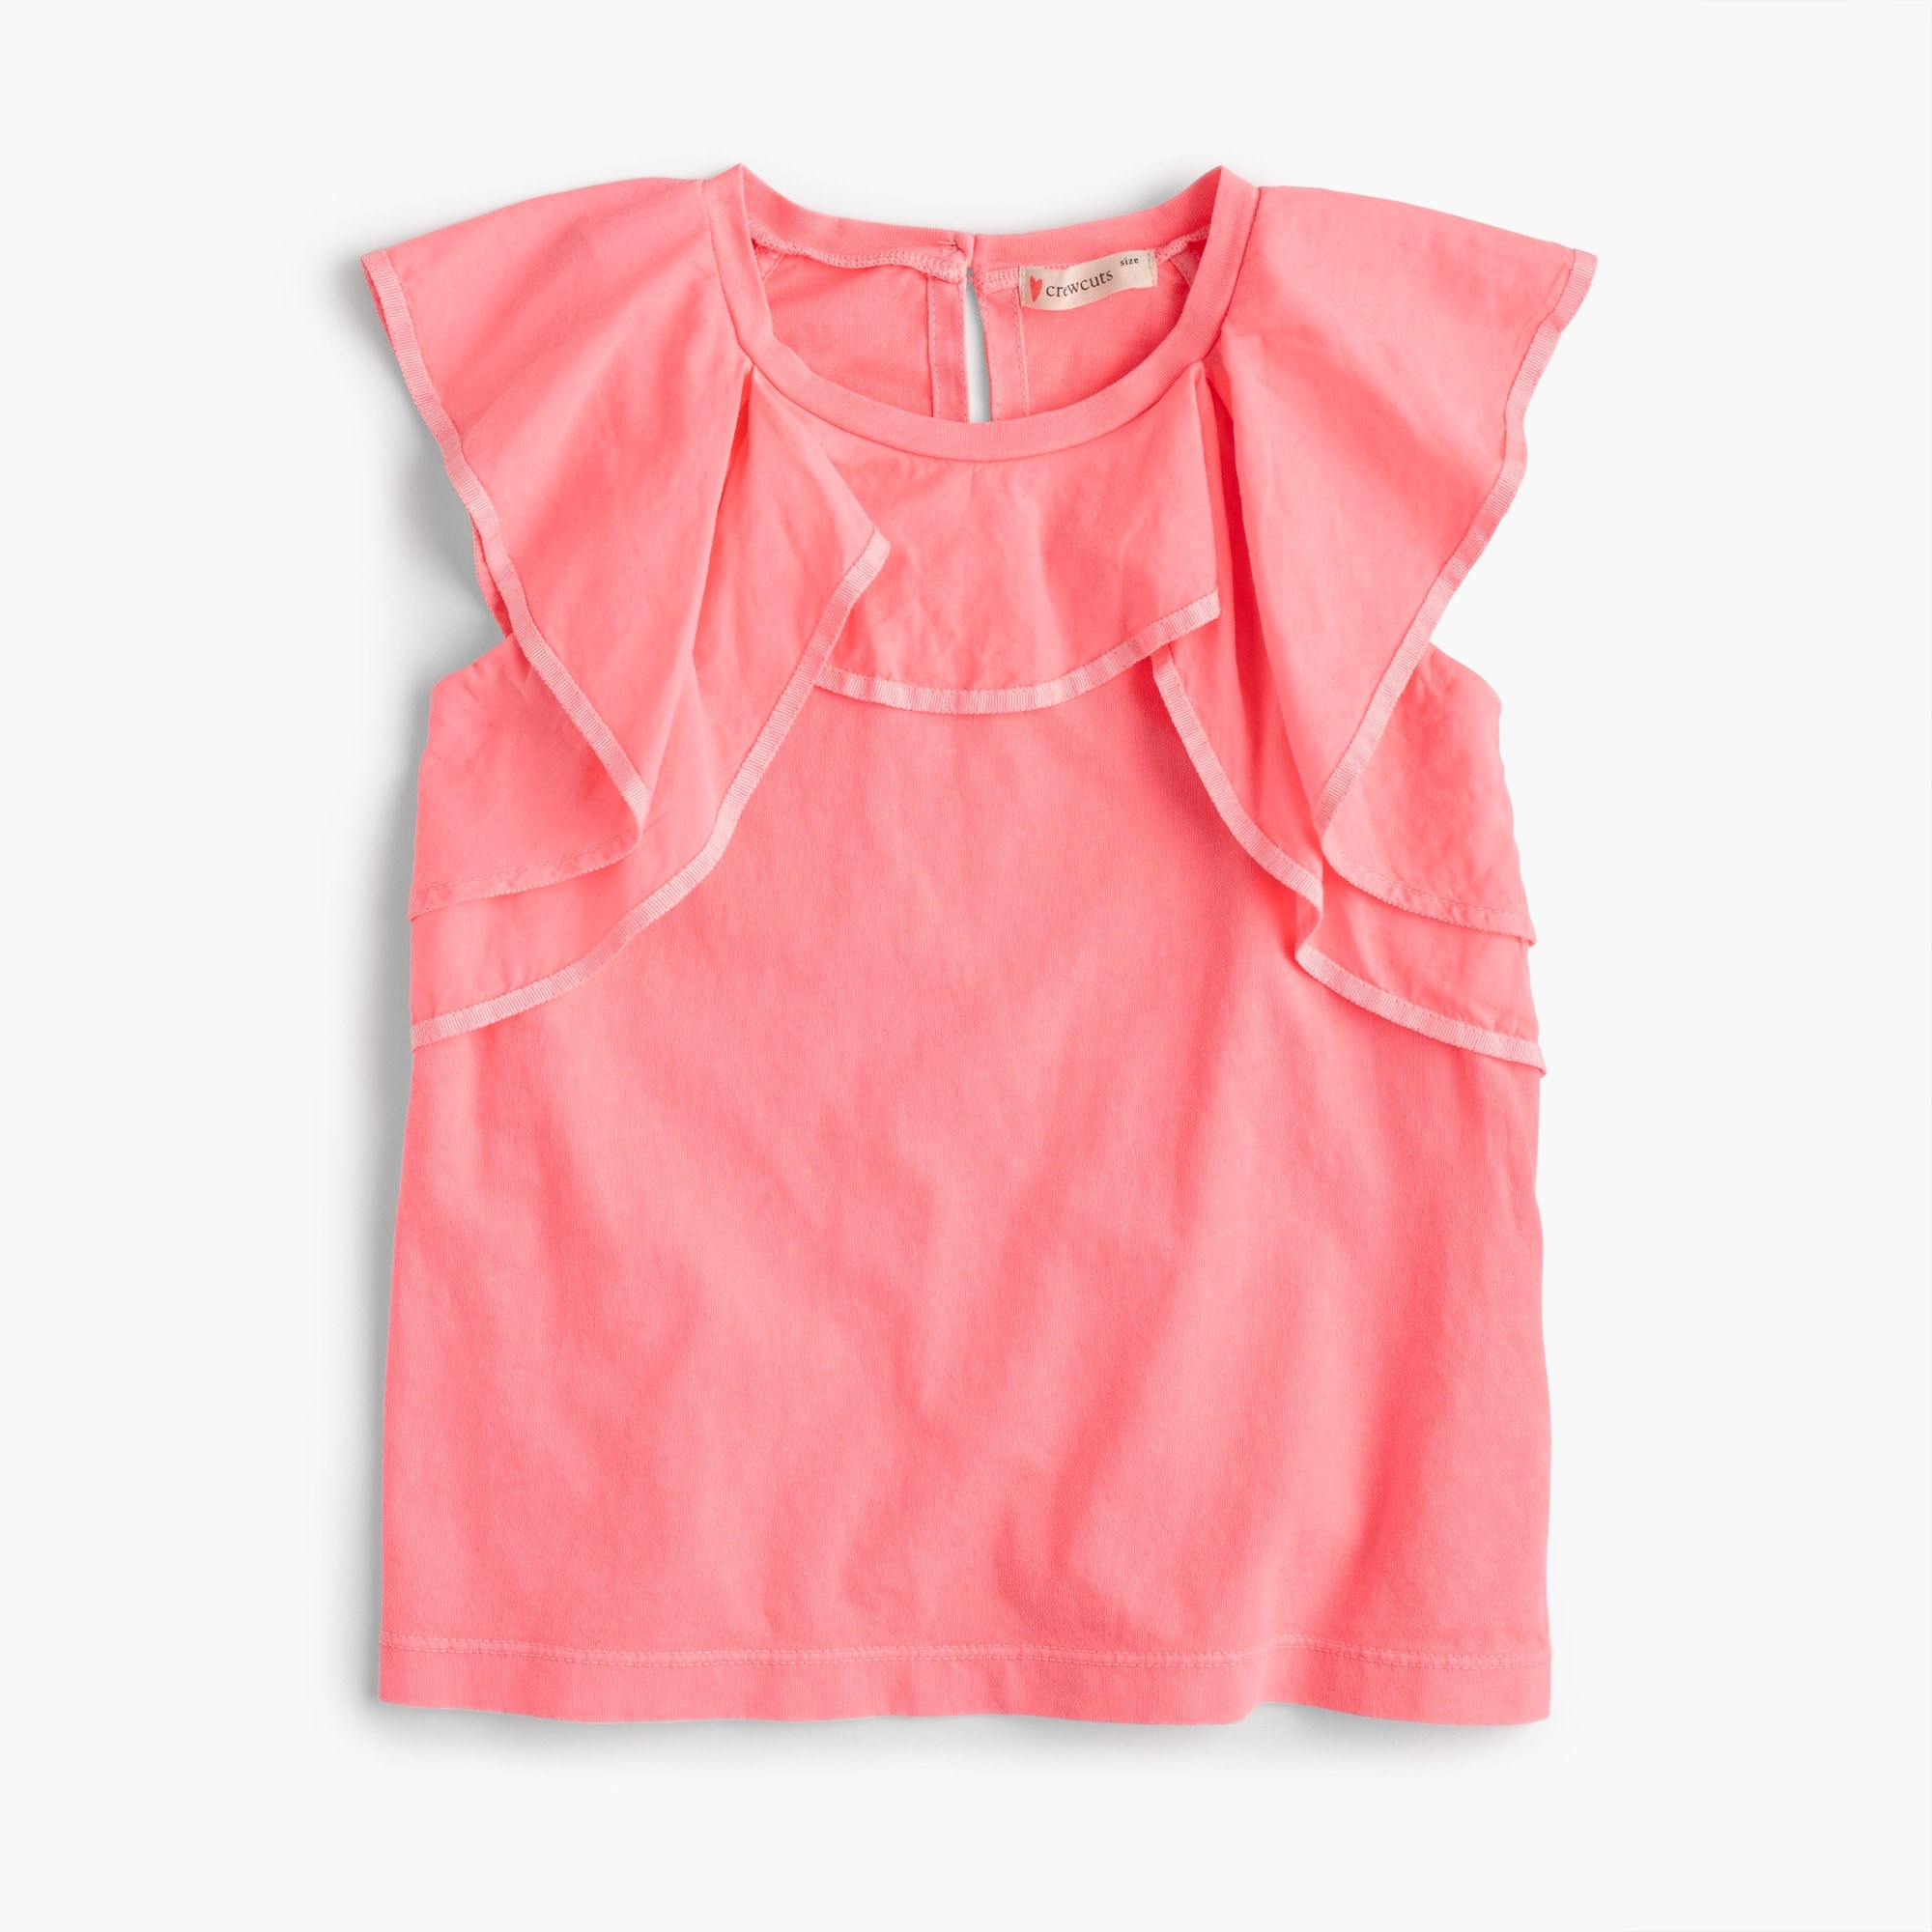 girls' contrast ruffle top : girl tanks